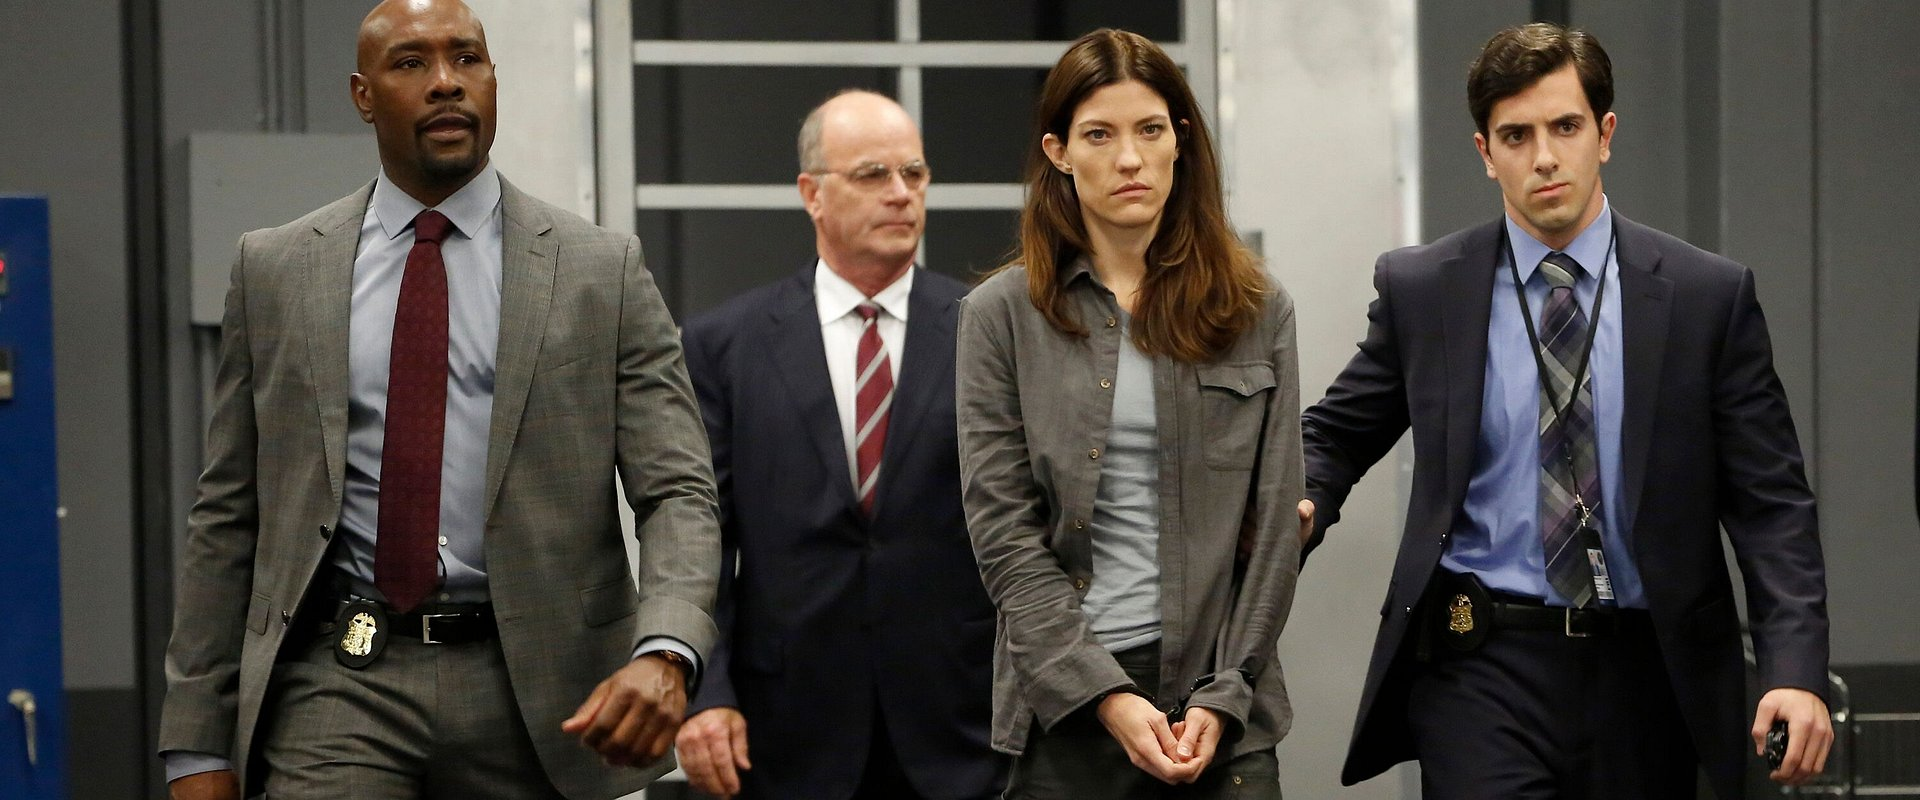 JENNIFER CARPENTER E MORRIS CHESTNUT REGRESSAM À FOX EM NOVA SÉRIE 'THE ENEMY WITHIN'